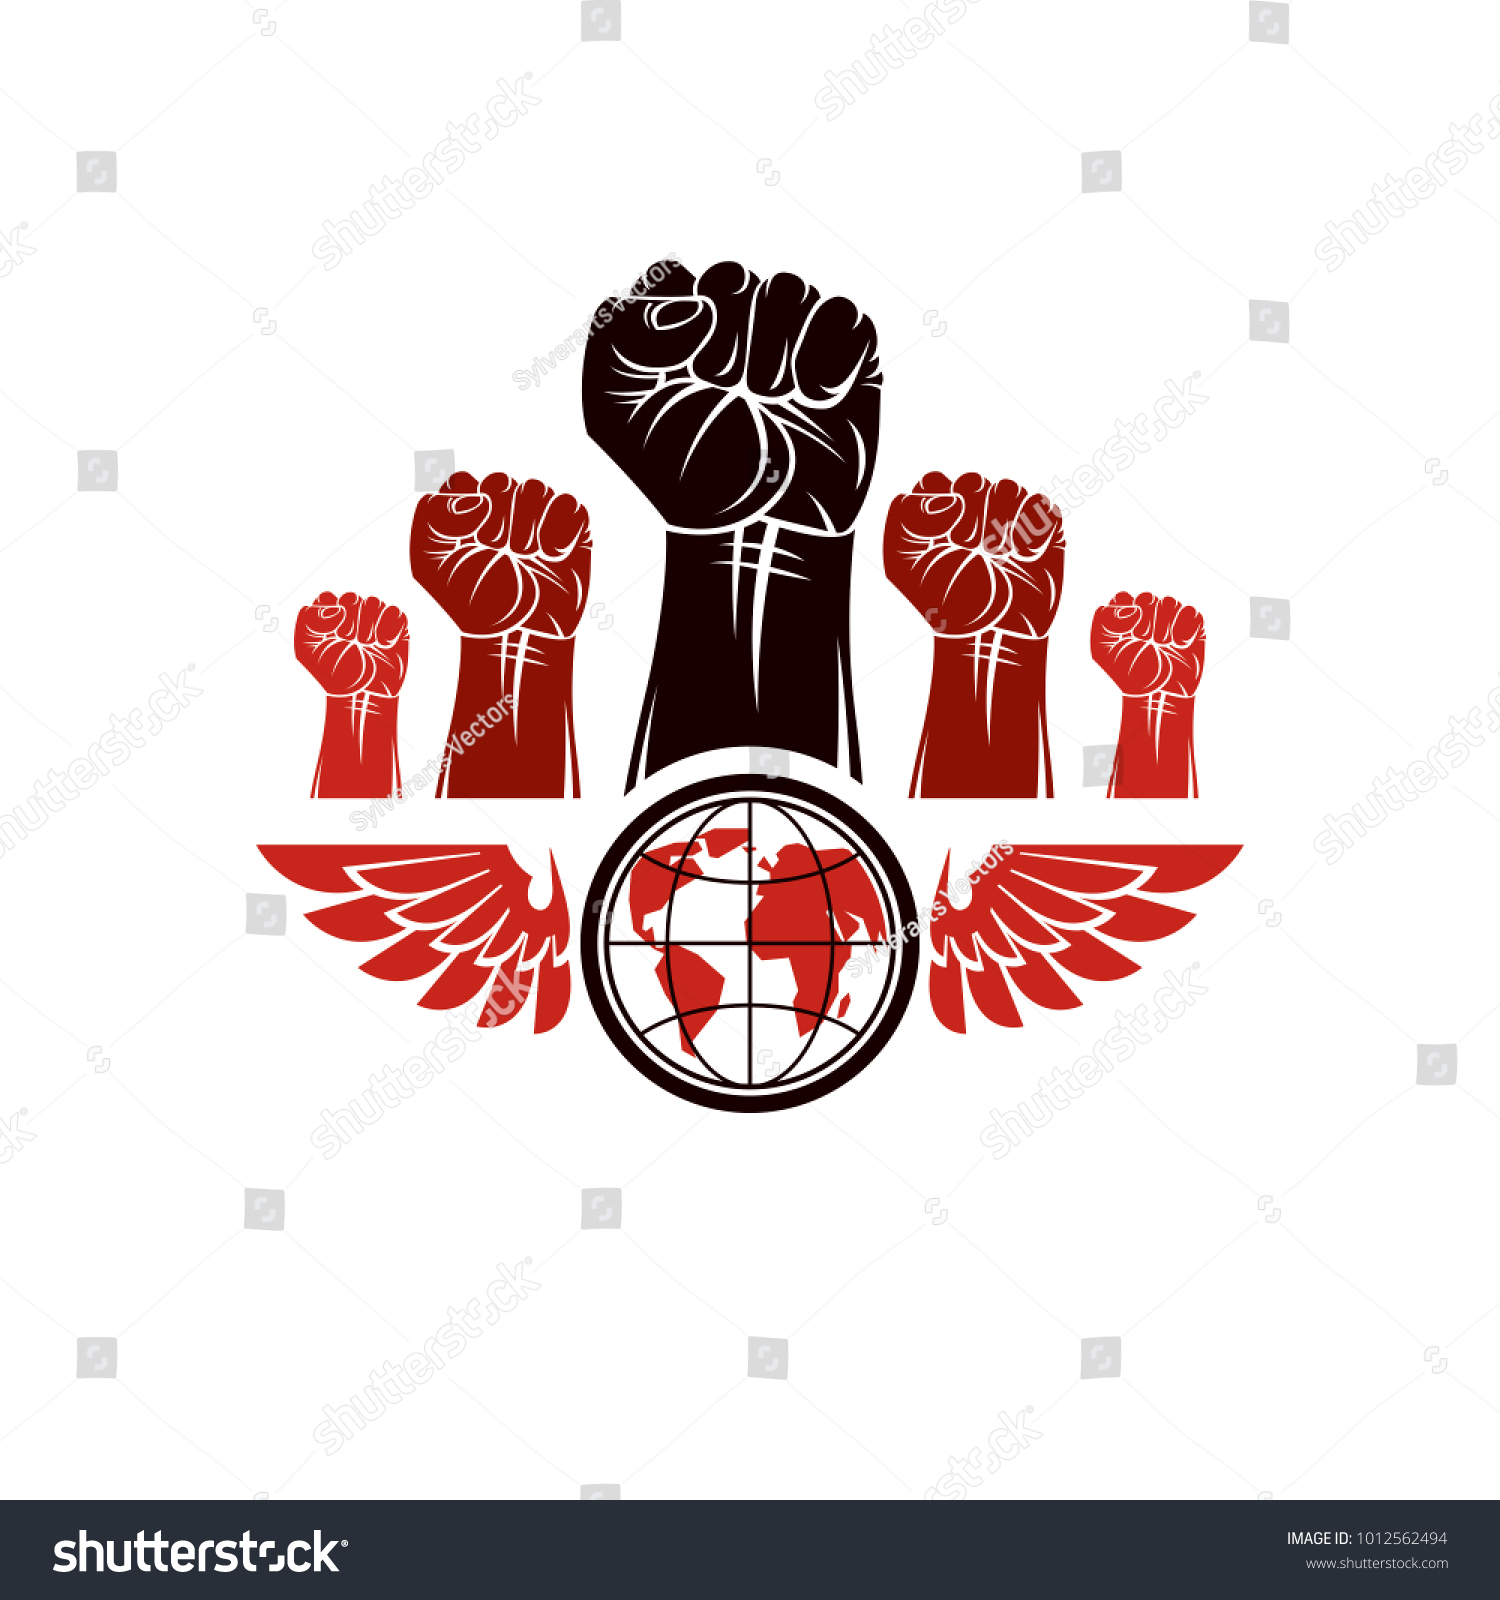 Clenched fists angry people winged vector stock vector 1012562494 clenched fists of angry people winged vector emblem composed with earth globe symbol civil war biocorpaavc